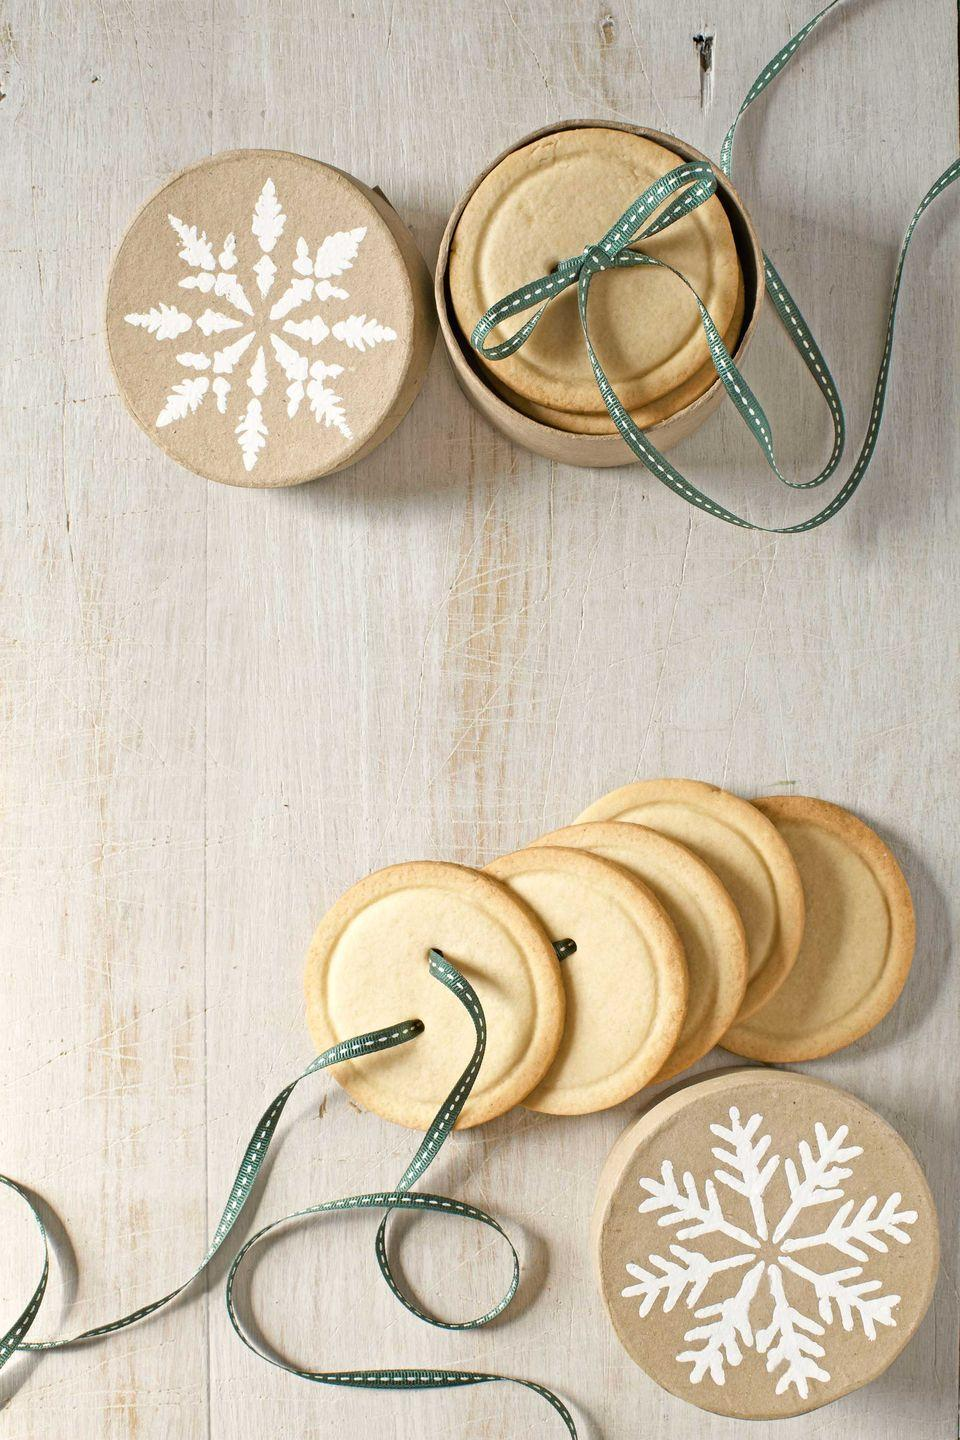 "<p>These buttery delights are cute as, well, you know. Gather a stack together by threading ribbon through the buttonholes, and present the cookies in a perfectly sized papier-mâché box with a snowflake stenciled on the lid.</p><p><strong><a href=""https://www.countryliving.com/food-drinks/recipes/a4272/sugar-cookie-buttons-recipe-clv1212/"" rel=""nofollow noopener"" target=""_blank"" data-ylk=""slk:Get the recipe."" class=""link rapid-noclick-resp"">Get the recipe.</a></strong></p>"